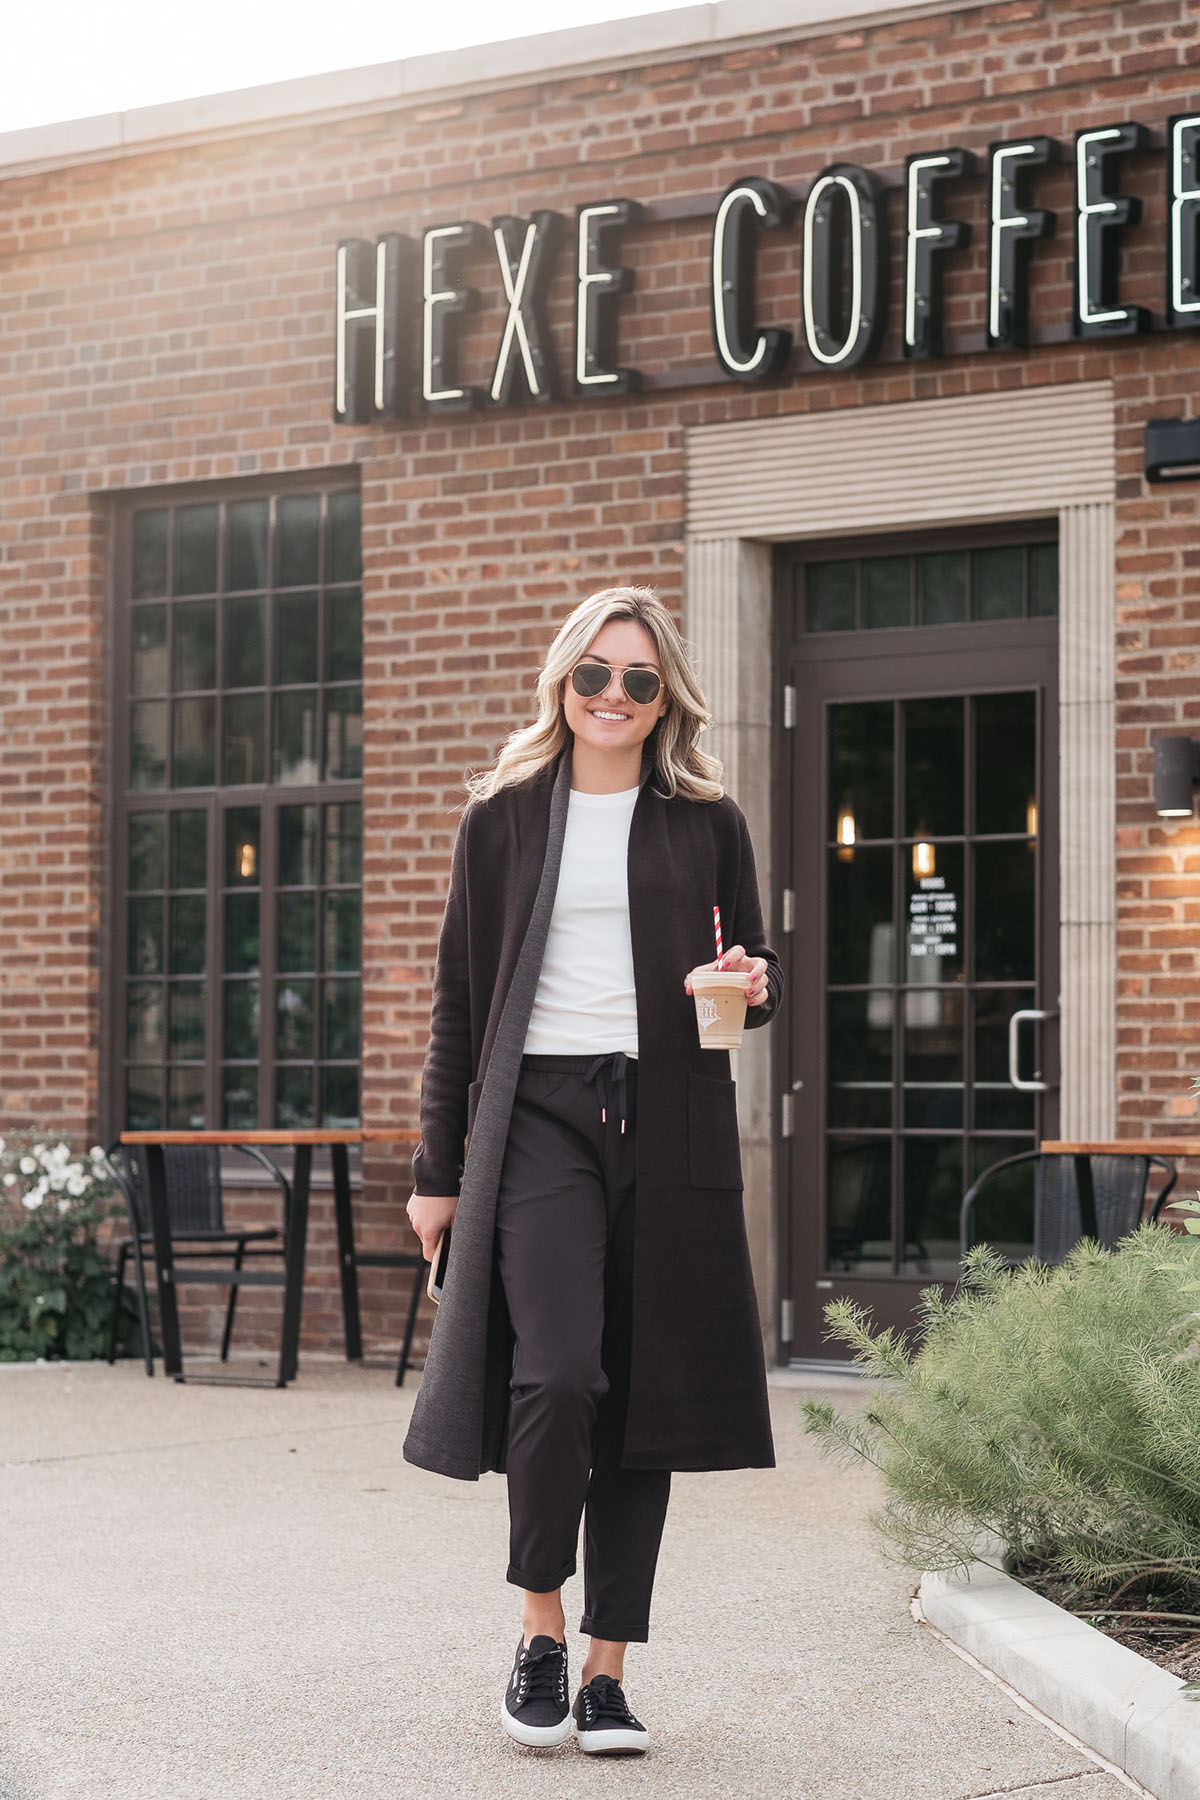 Chicago lifestyle influencer Jessica Sturdy of Bows & Sequins wearing women's jogger pants, Superga sneakers, and a Calia by Carrie Underwood long duster cardigan at Hexe Coffee.